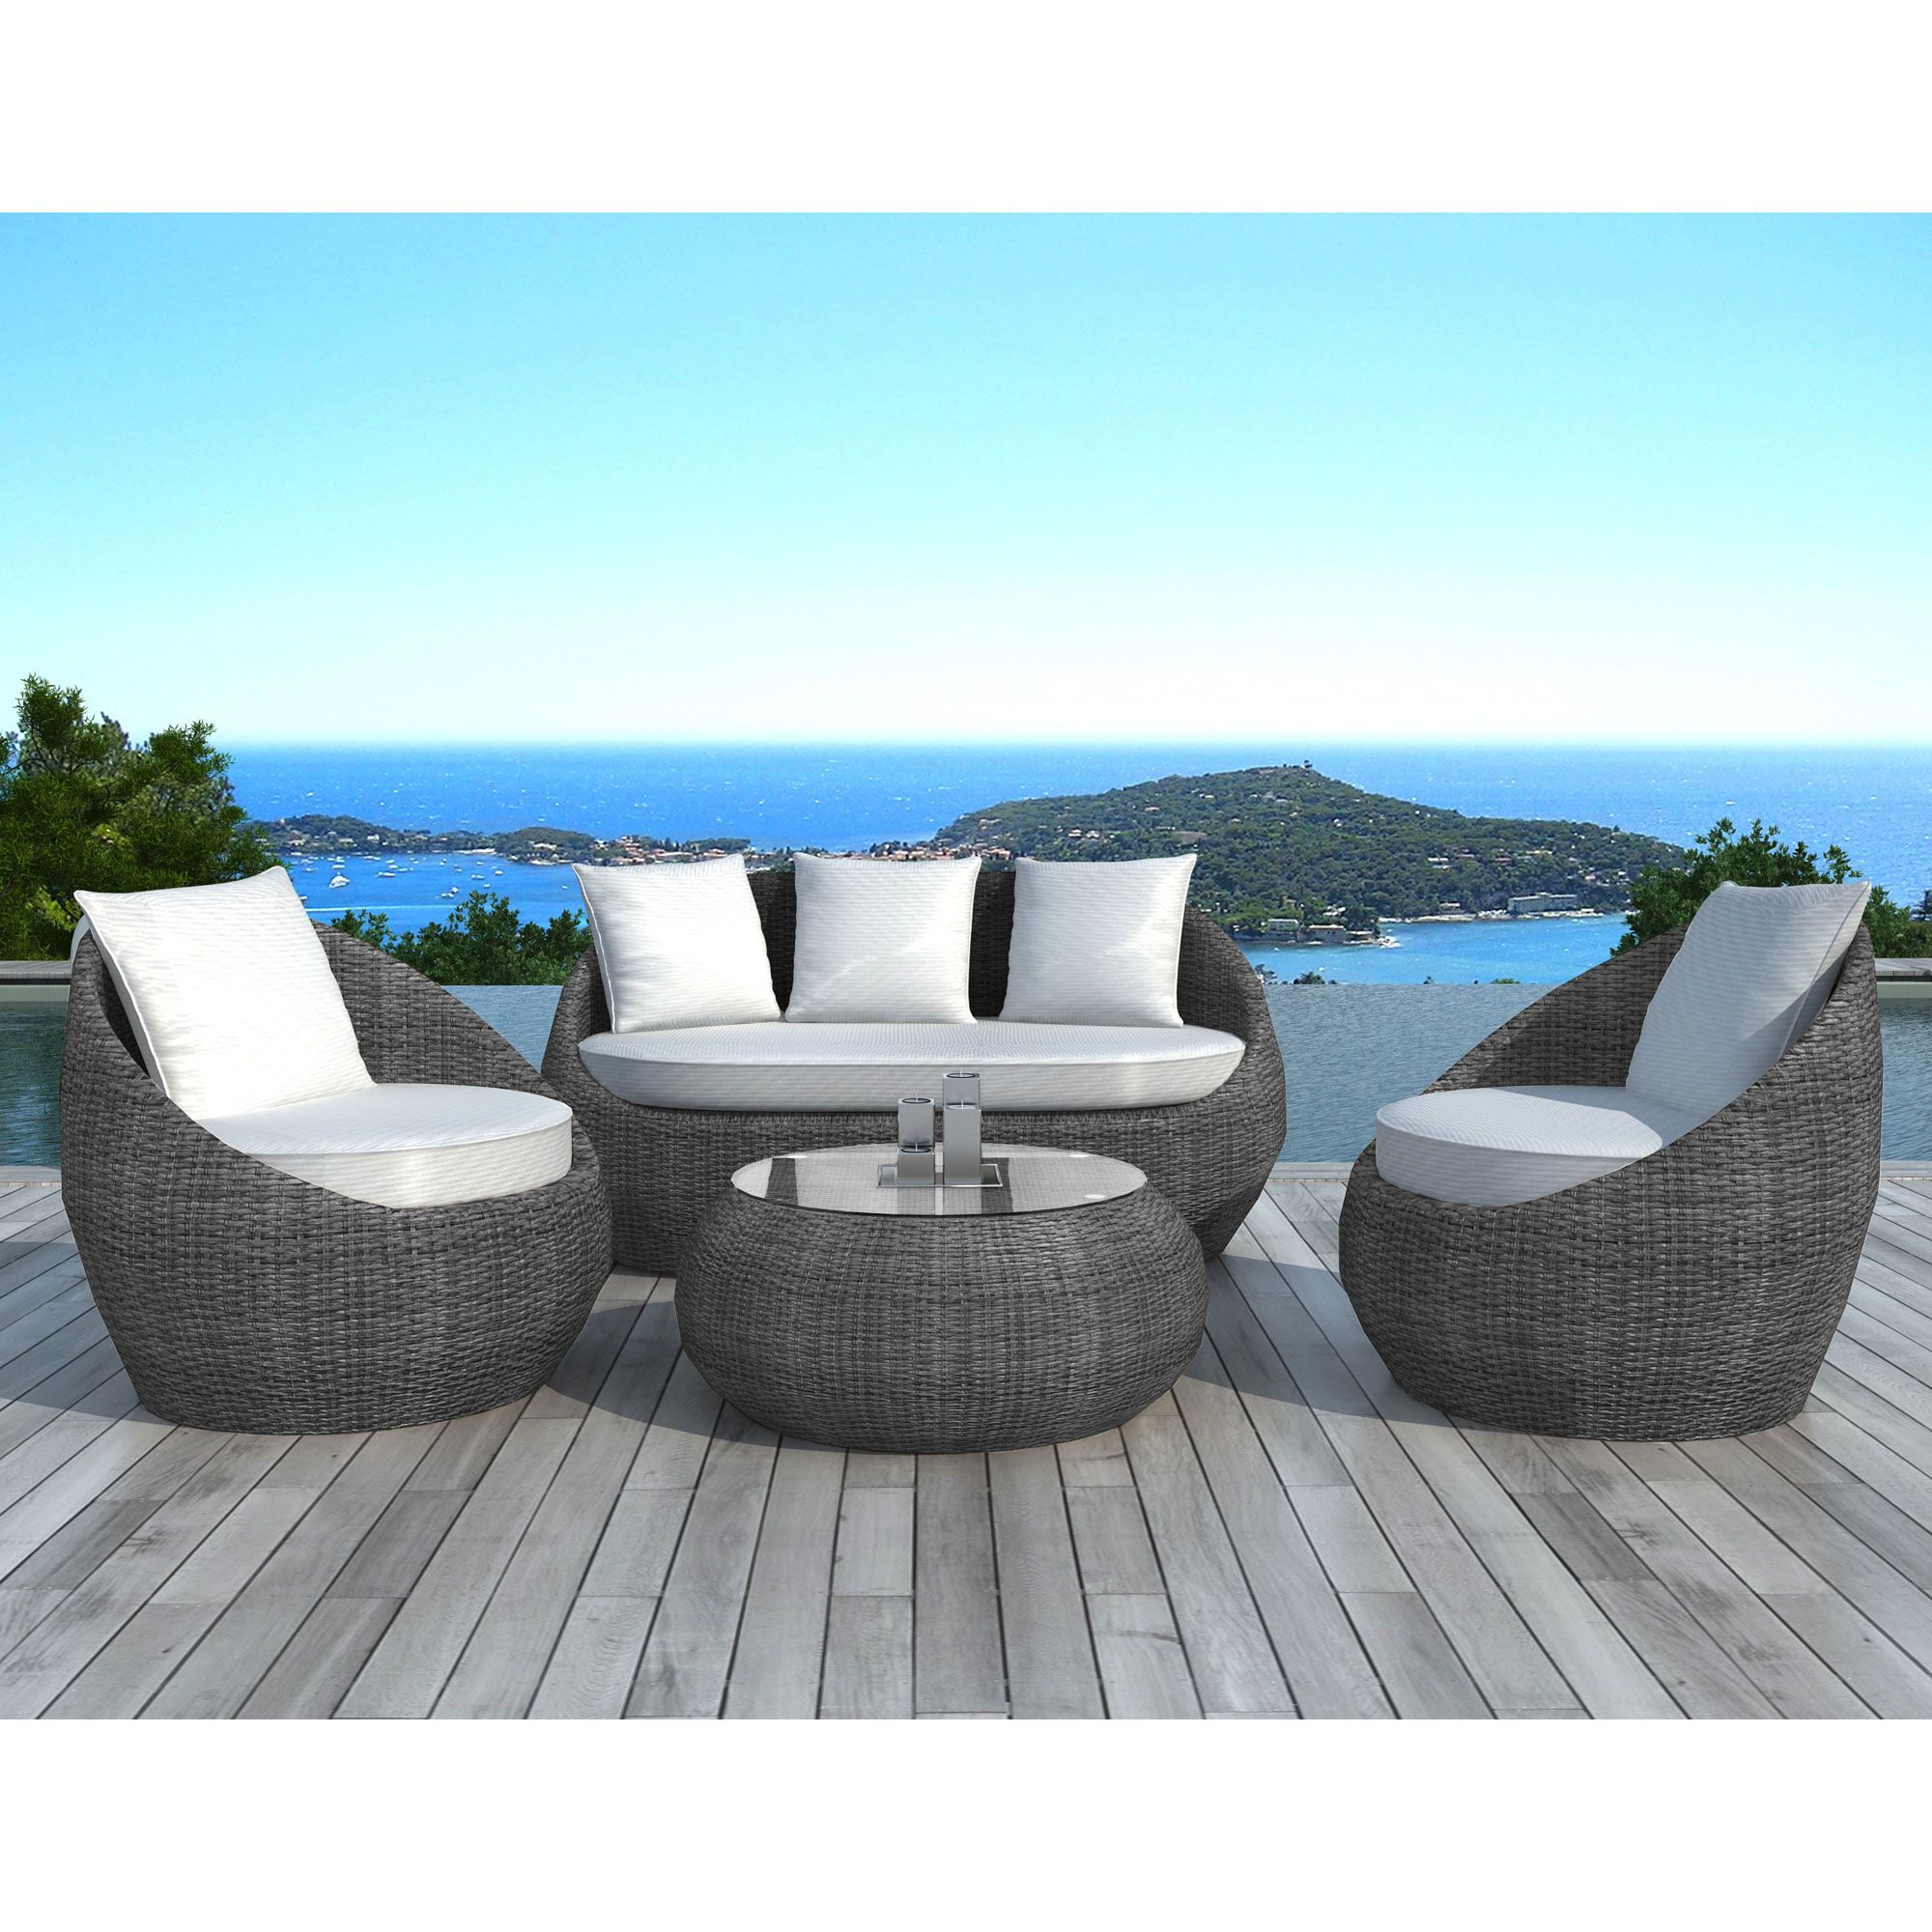 salon de jardin en r sine tress e 5 places http www. Black Bedroom Furniture Sets. Home Design Ideas